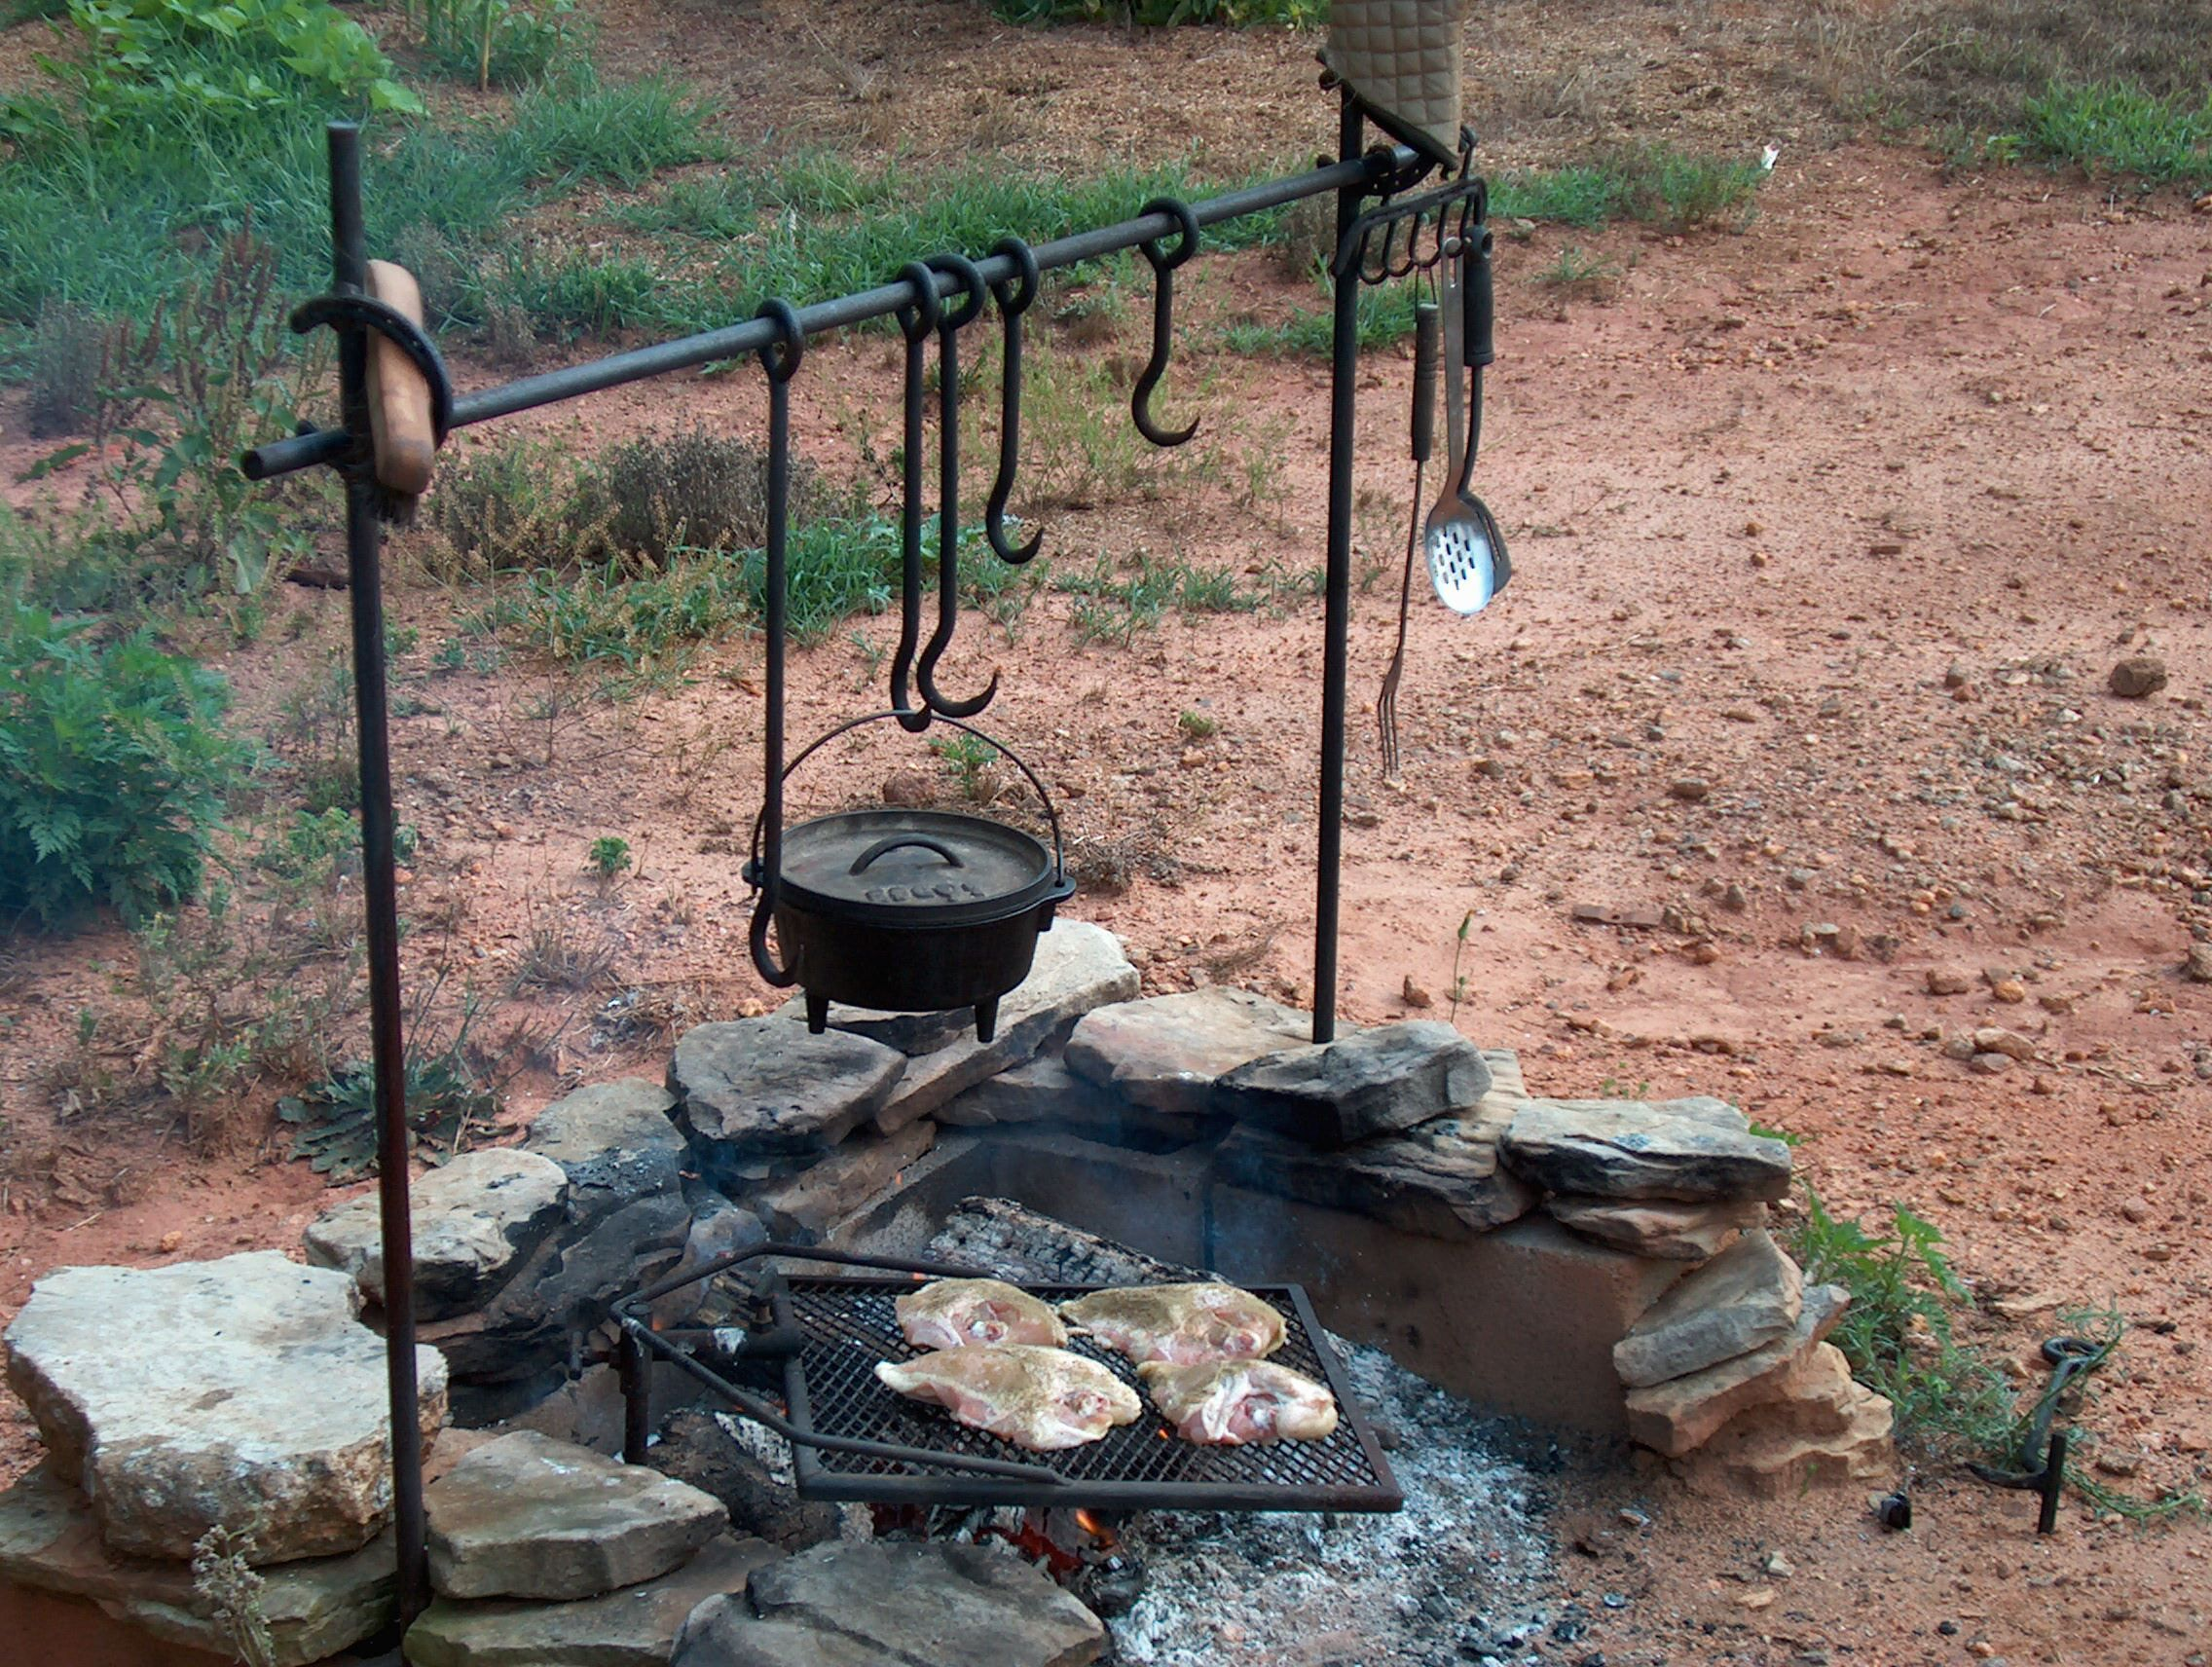 Cowgirl Cooking Html Outdoor Camping Kitchen Campfire Cooking Backyard Camping